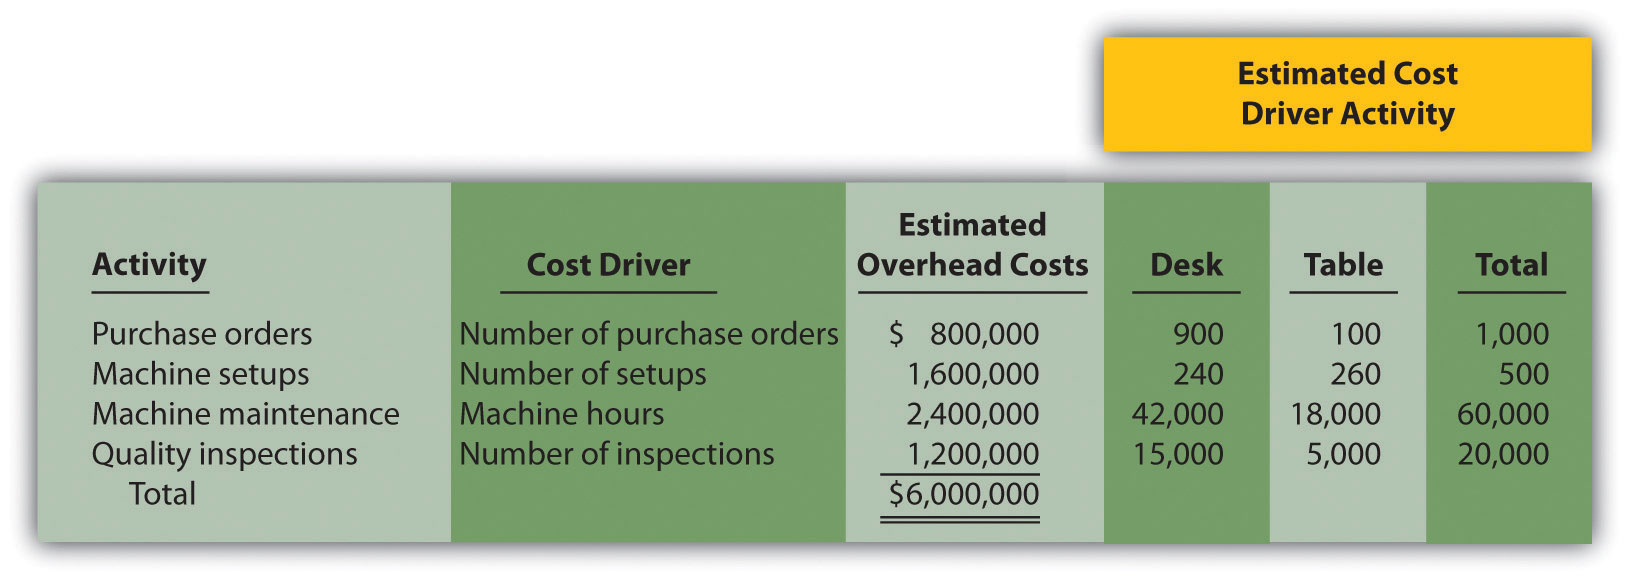 How Does an Organization Use ActivityBased Costing to